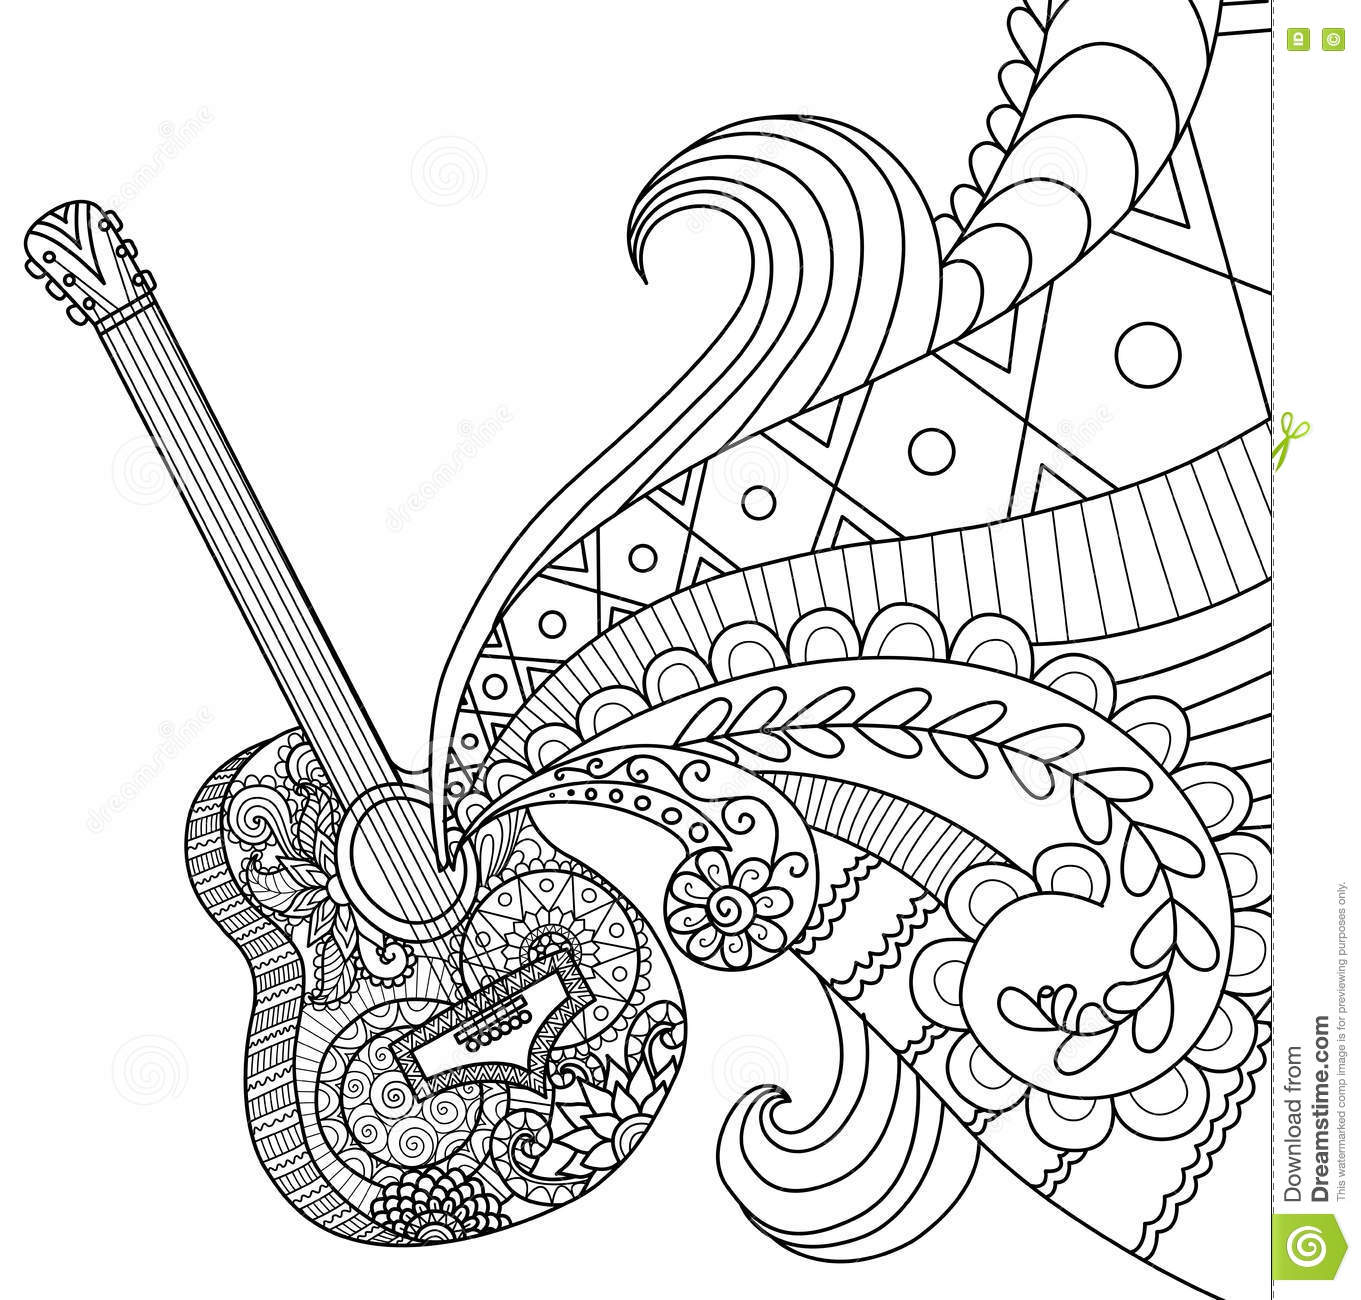 guitar coloring pages guitar coloring pages coloring pages to download and print guitar coloring pages